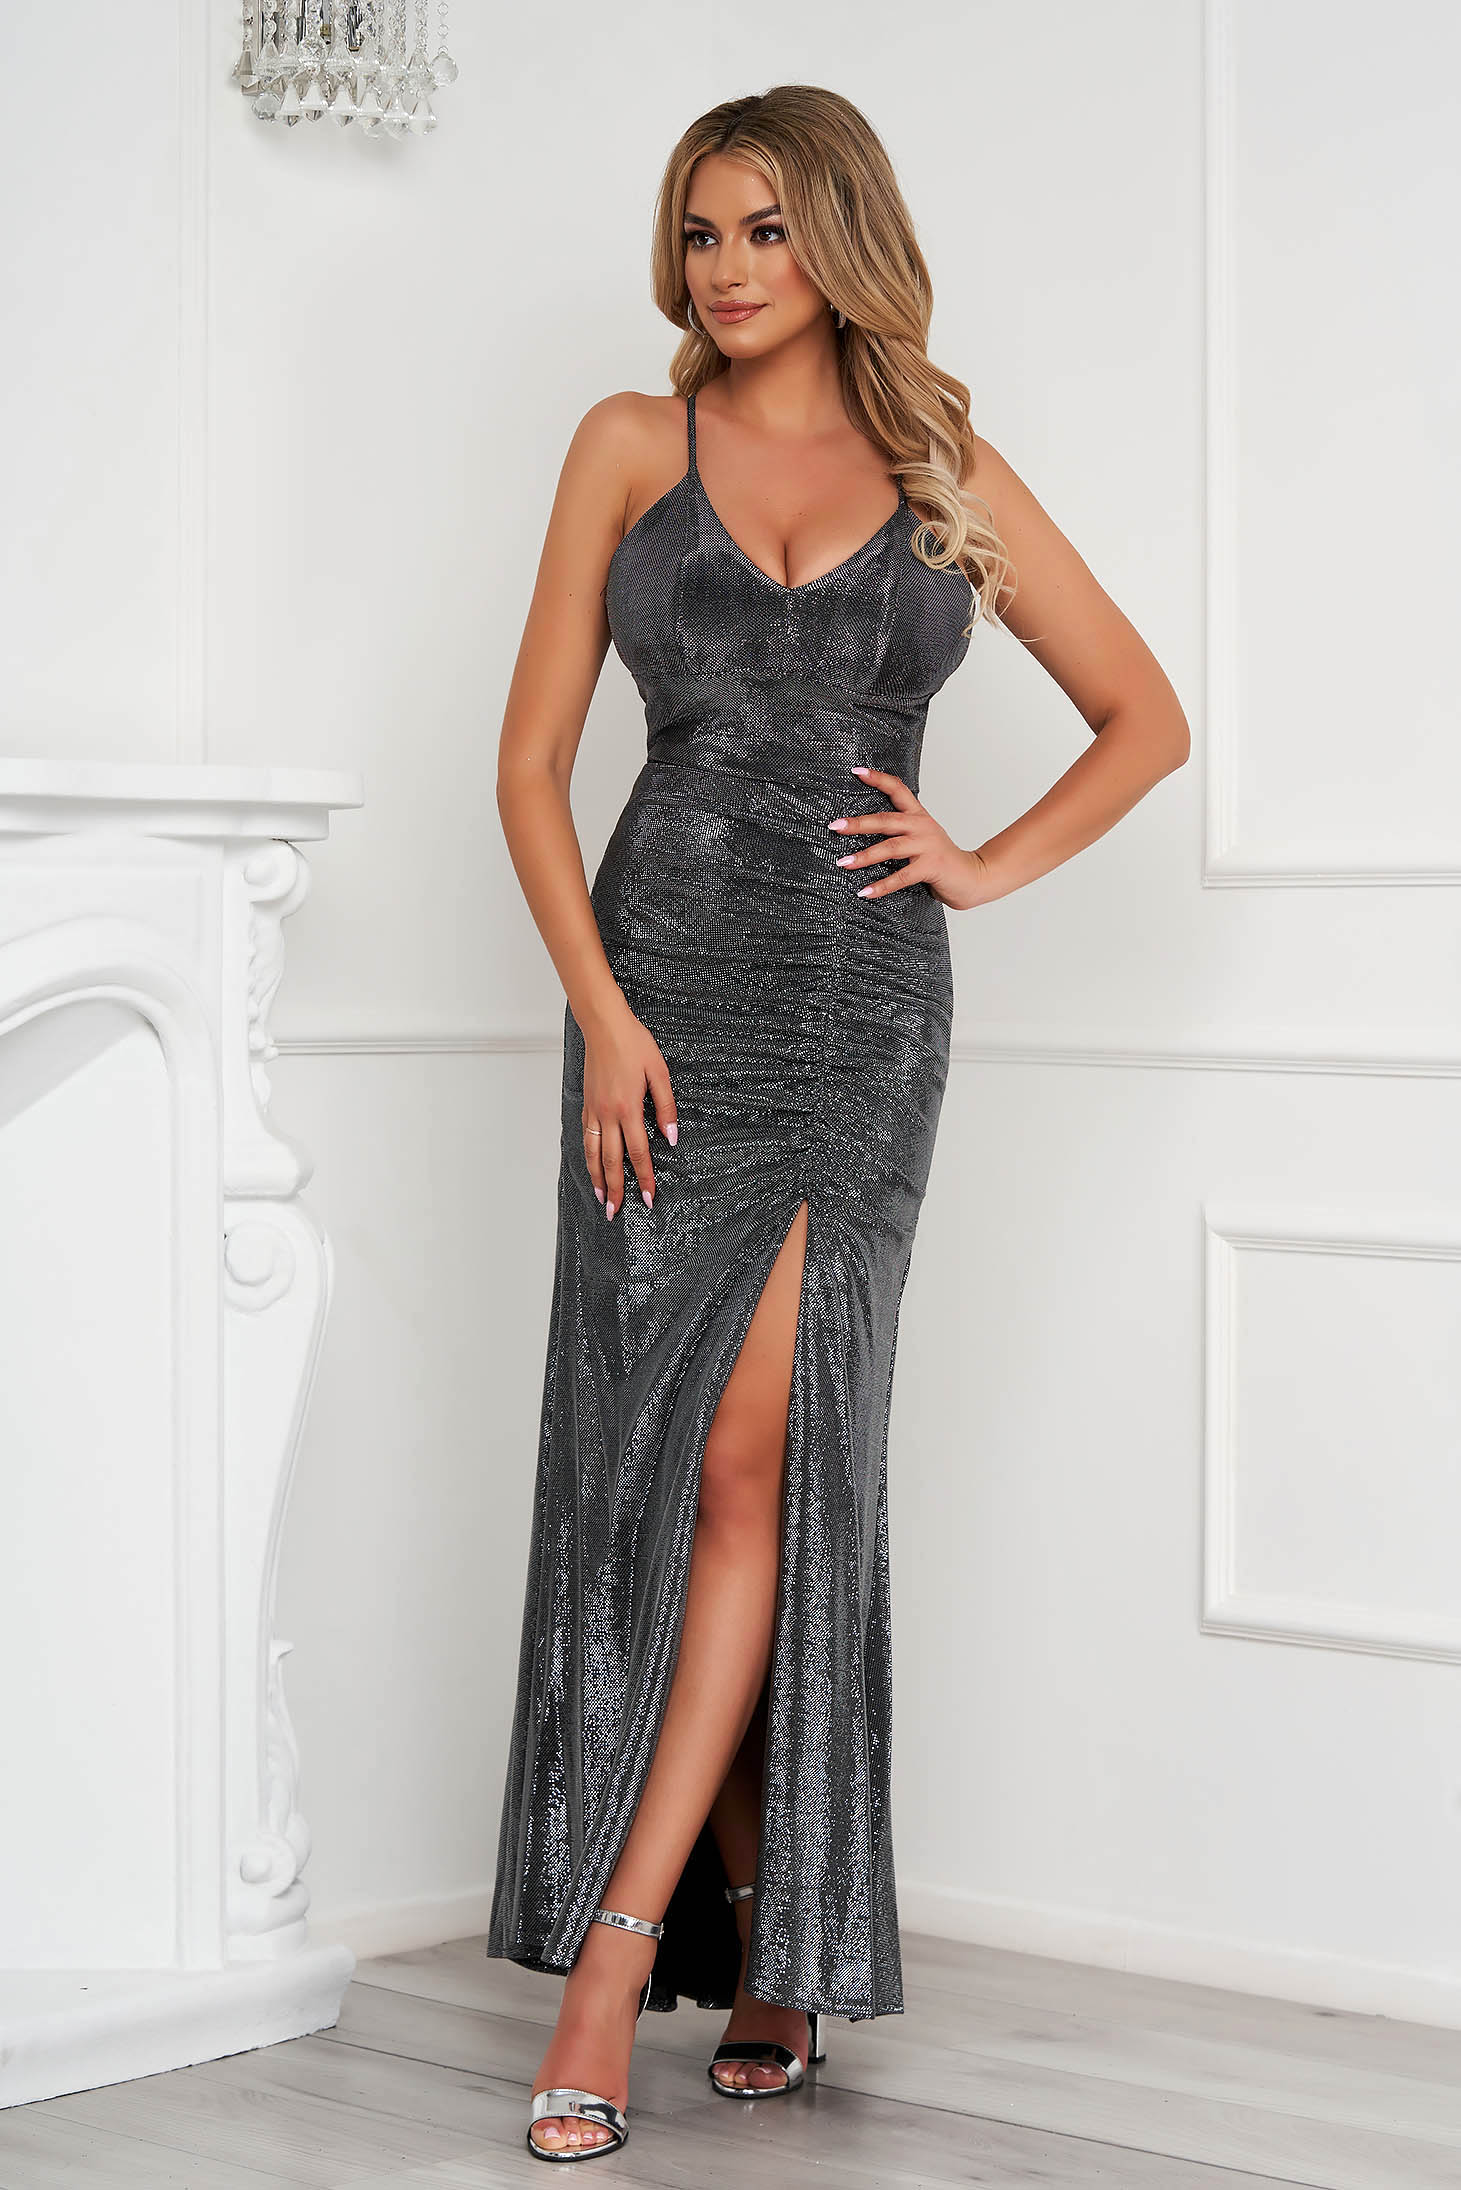 Silver dress occasional long pencil with push-up cups with straps